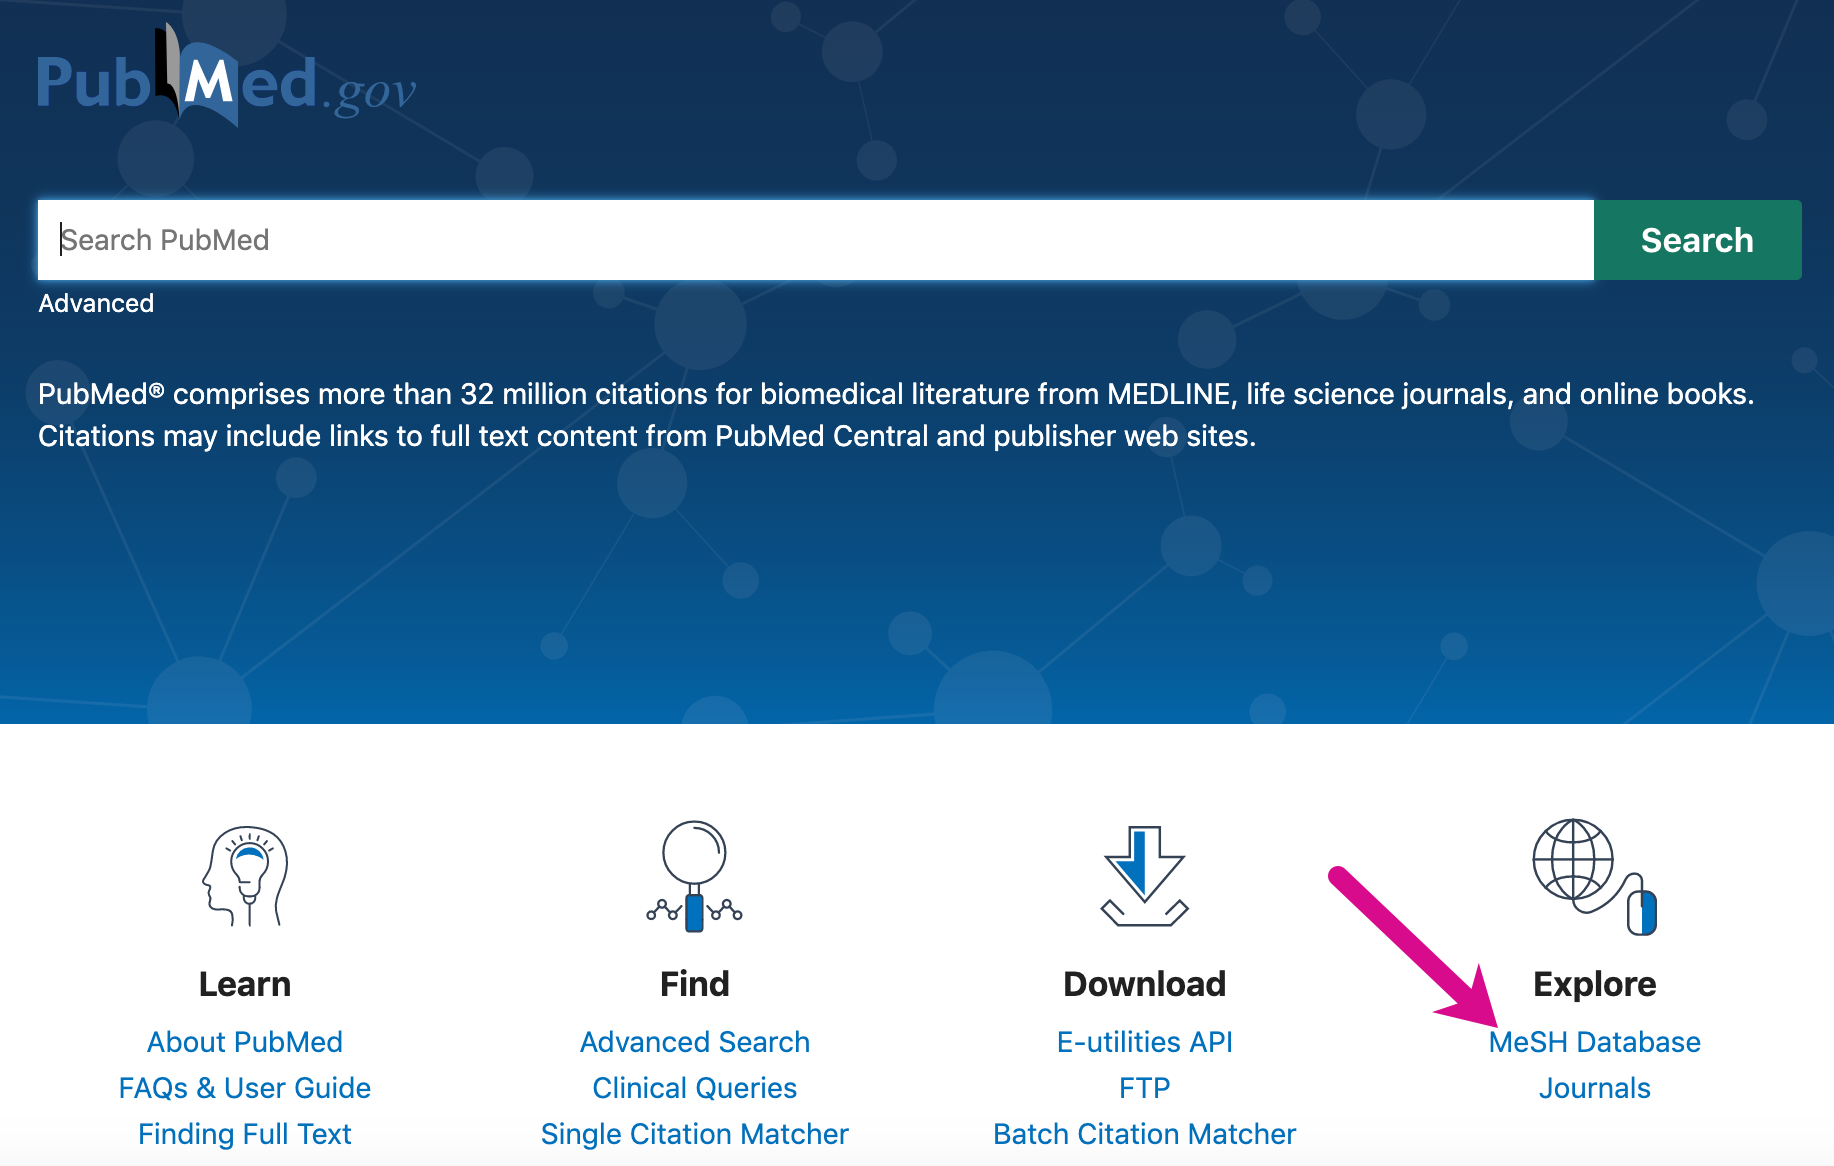 Screenshot pointing out MeSH database link on the PubMed homepage